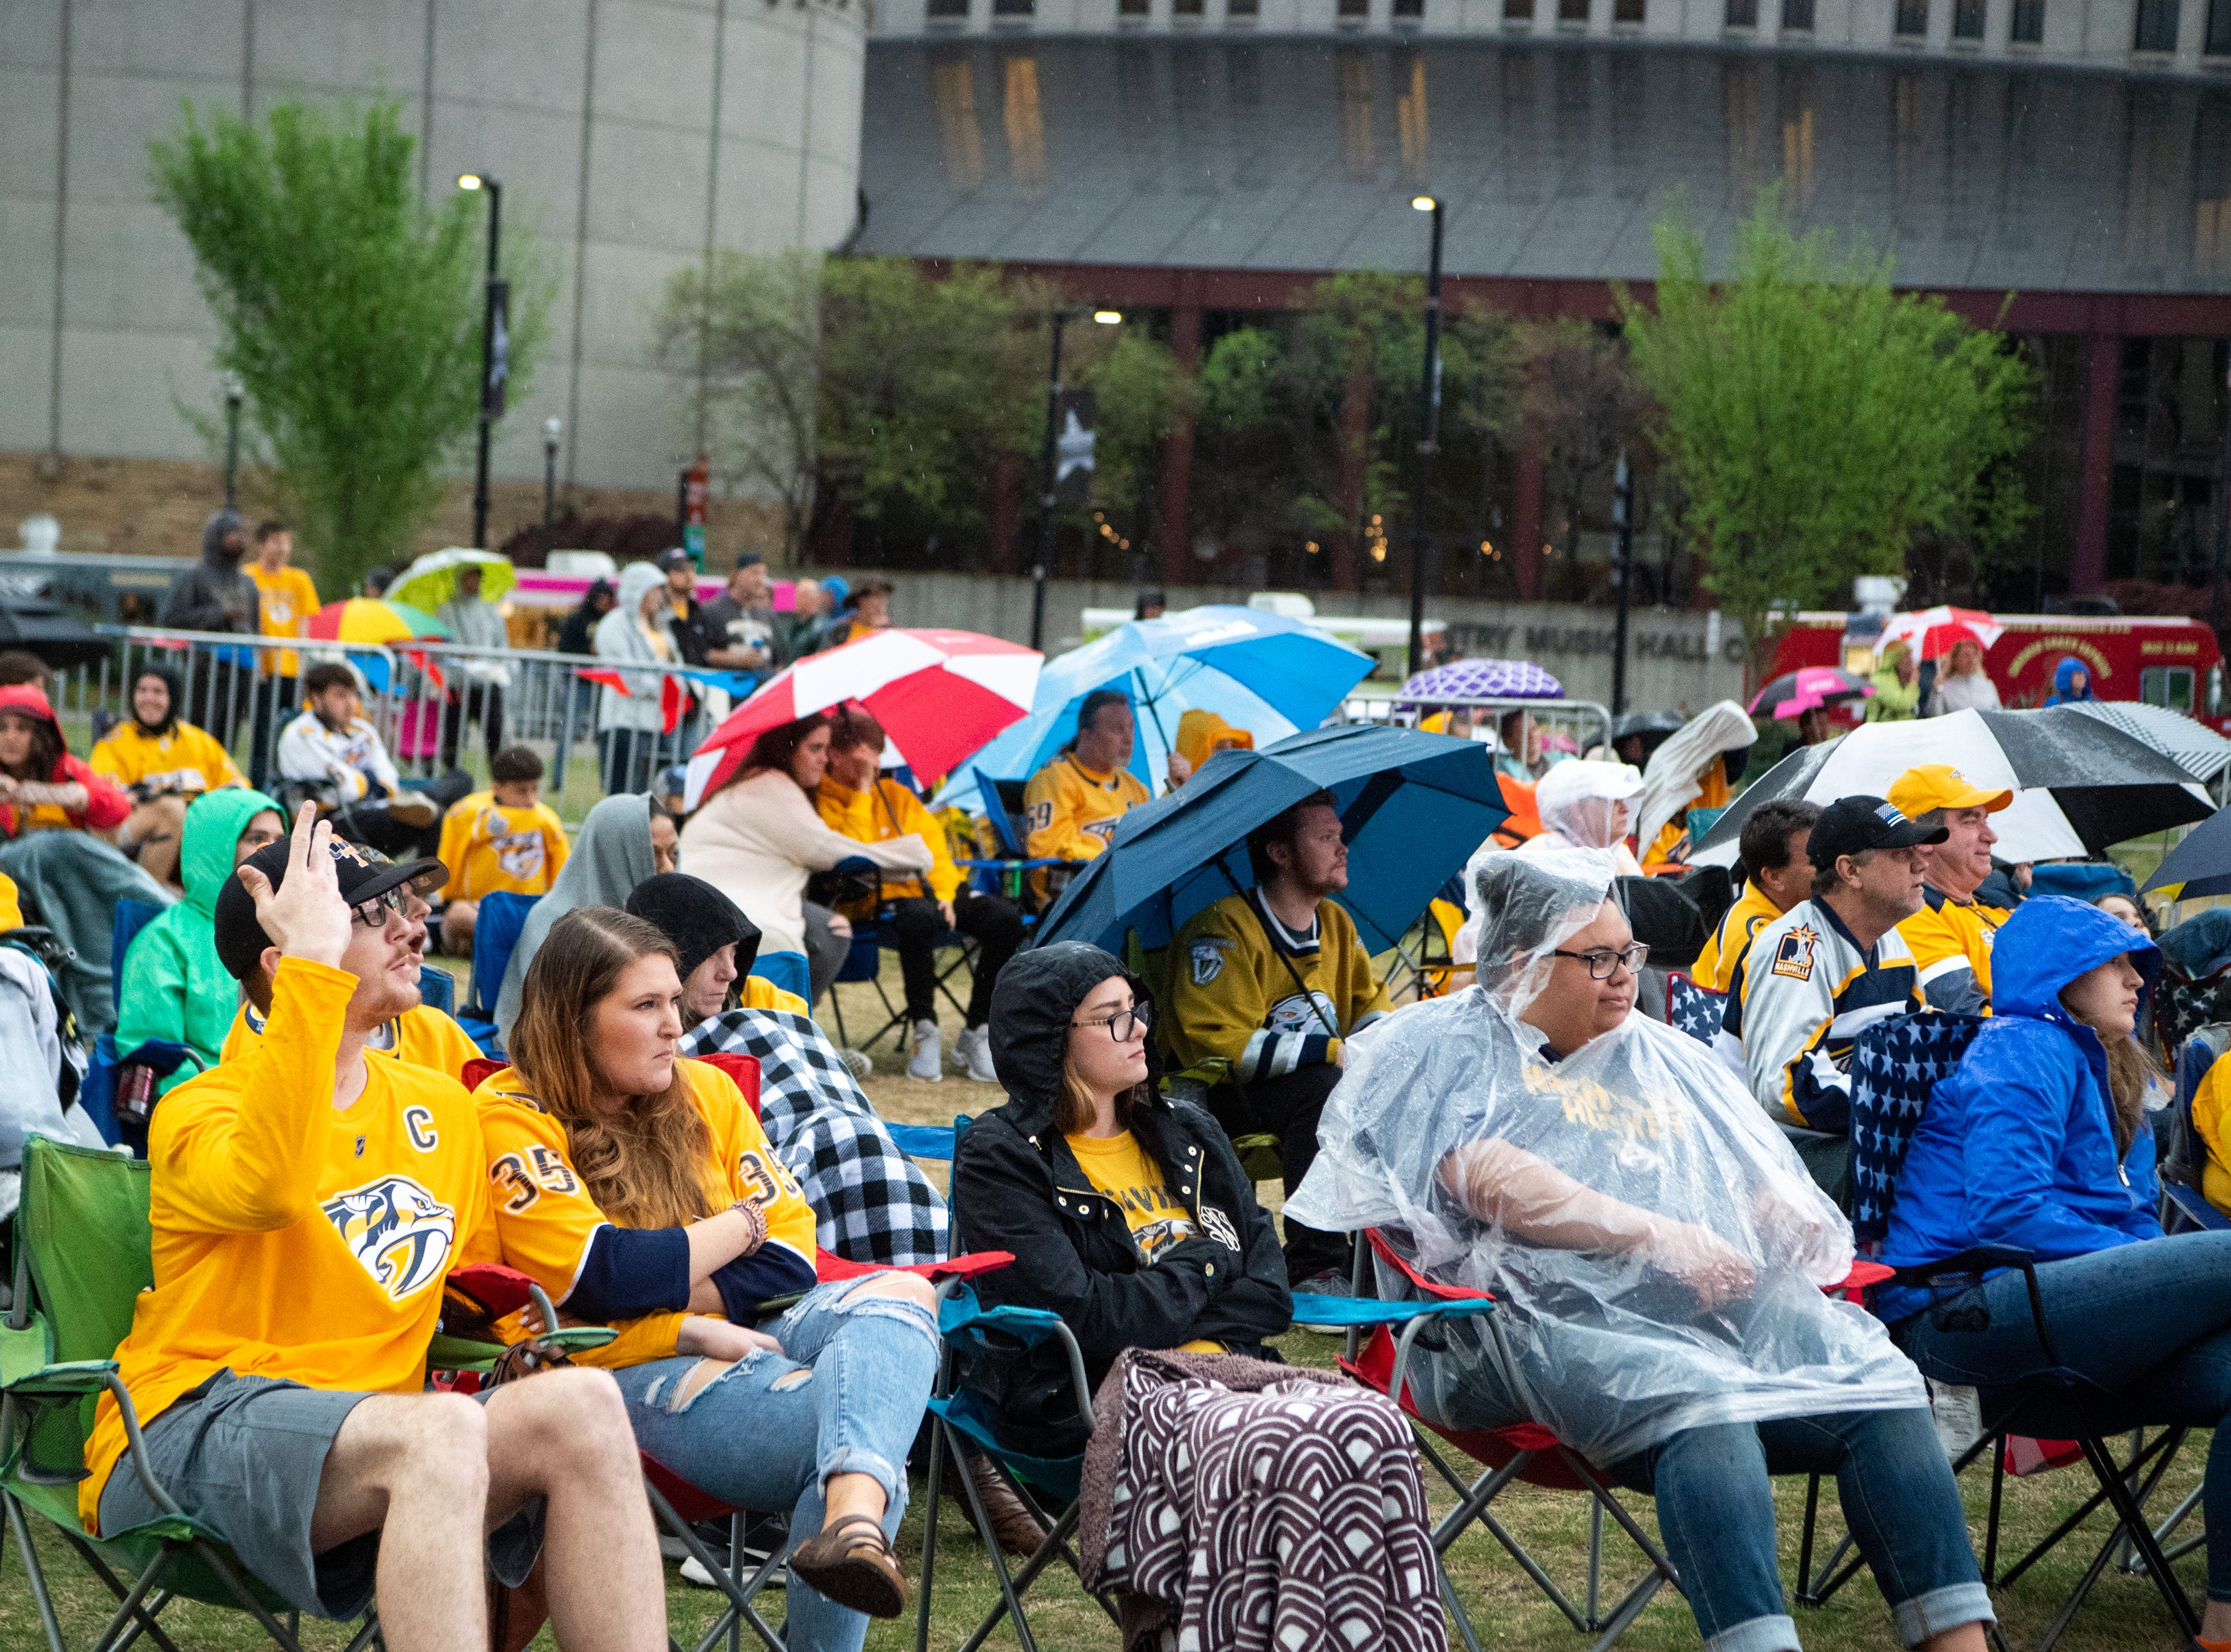 Fans watch the second period of the Nashville Predators game against the Dallas Stars at Preds Party in the Park at Walk of Fame Park Saturday, April 13, 2019, in Nashville, Tenn.